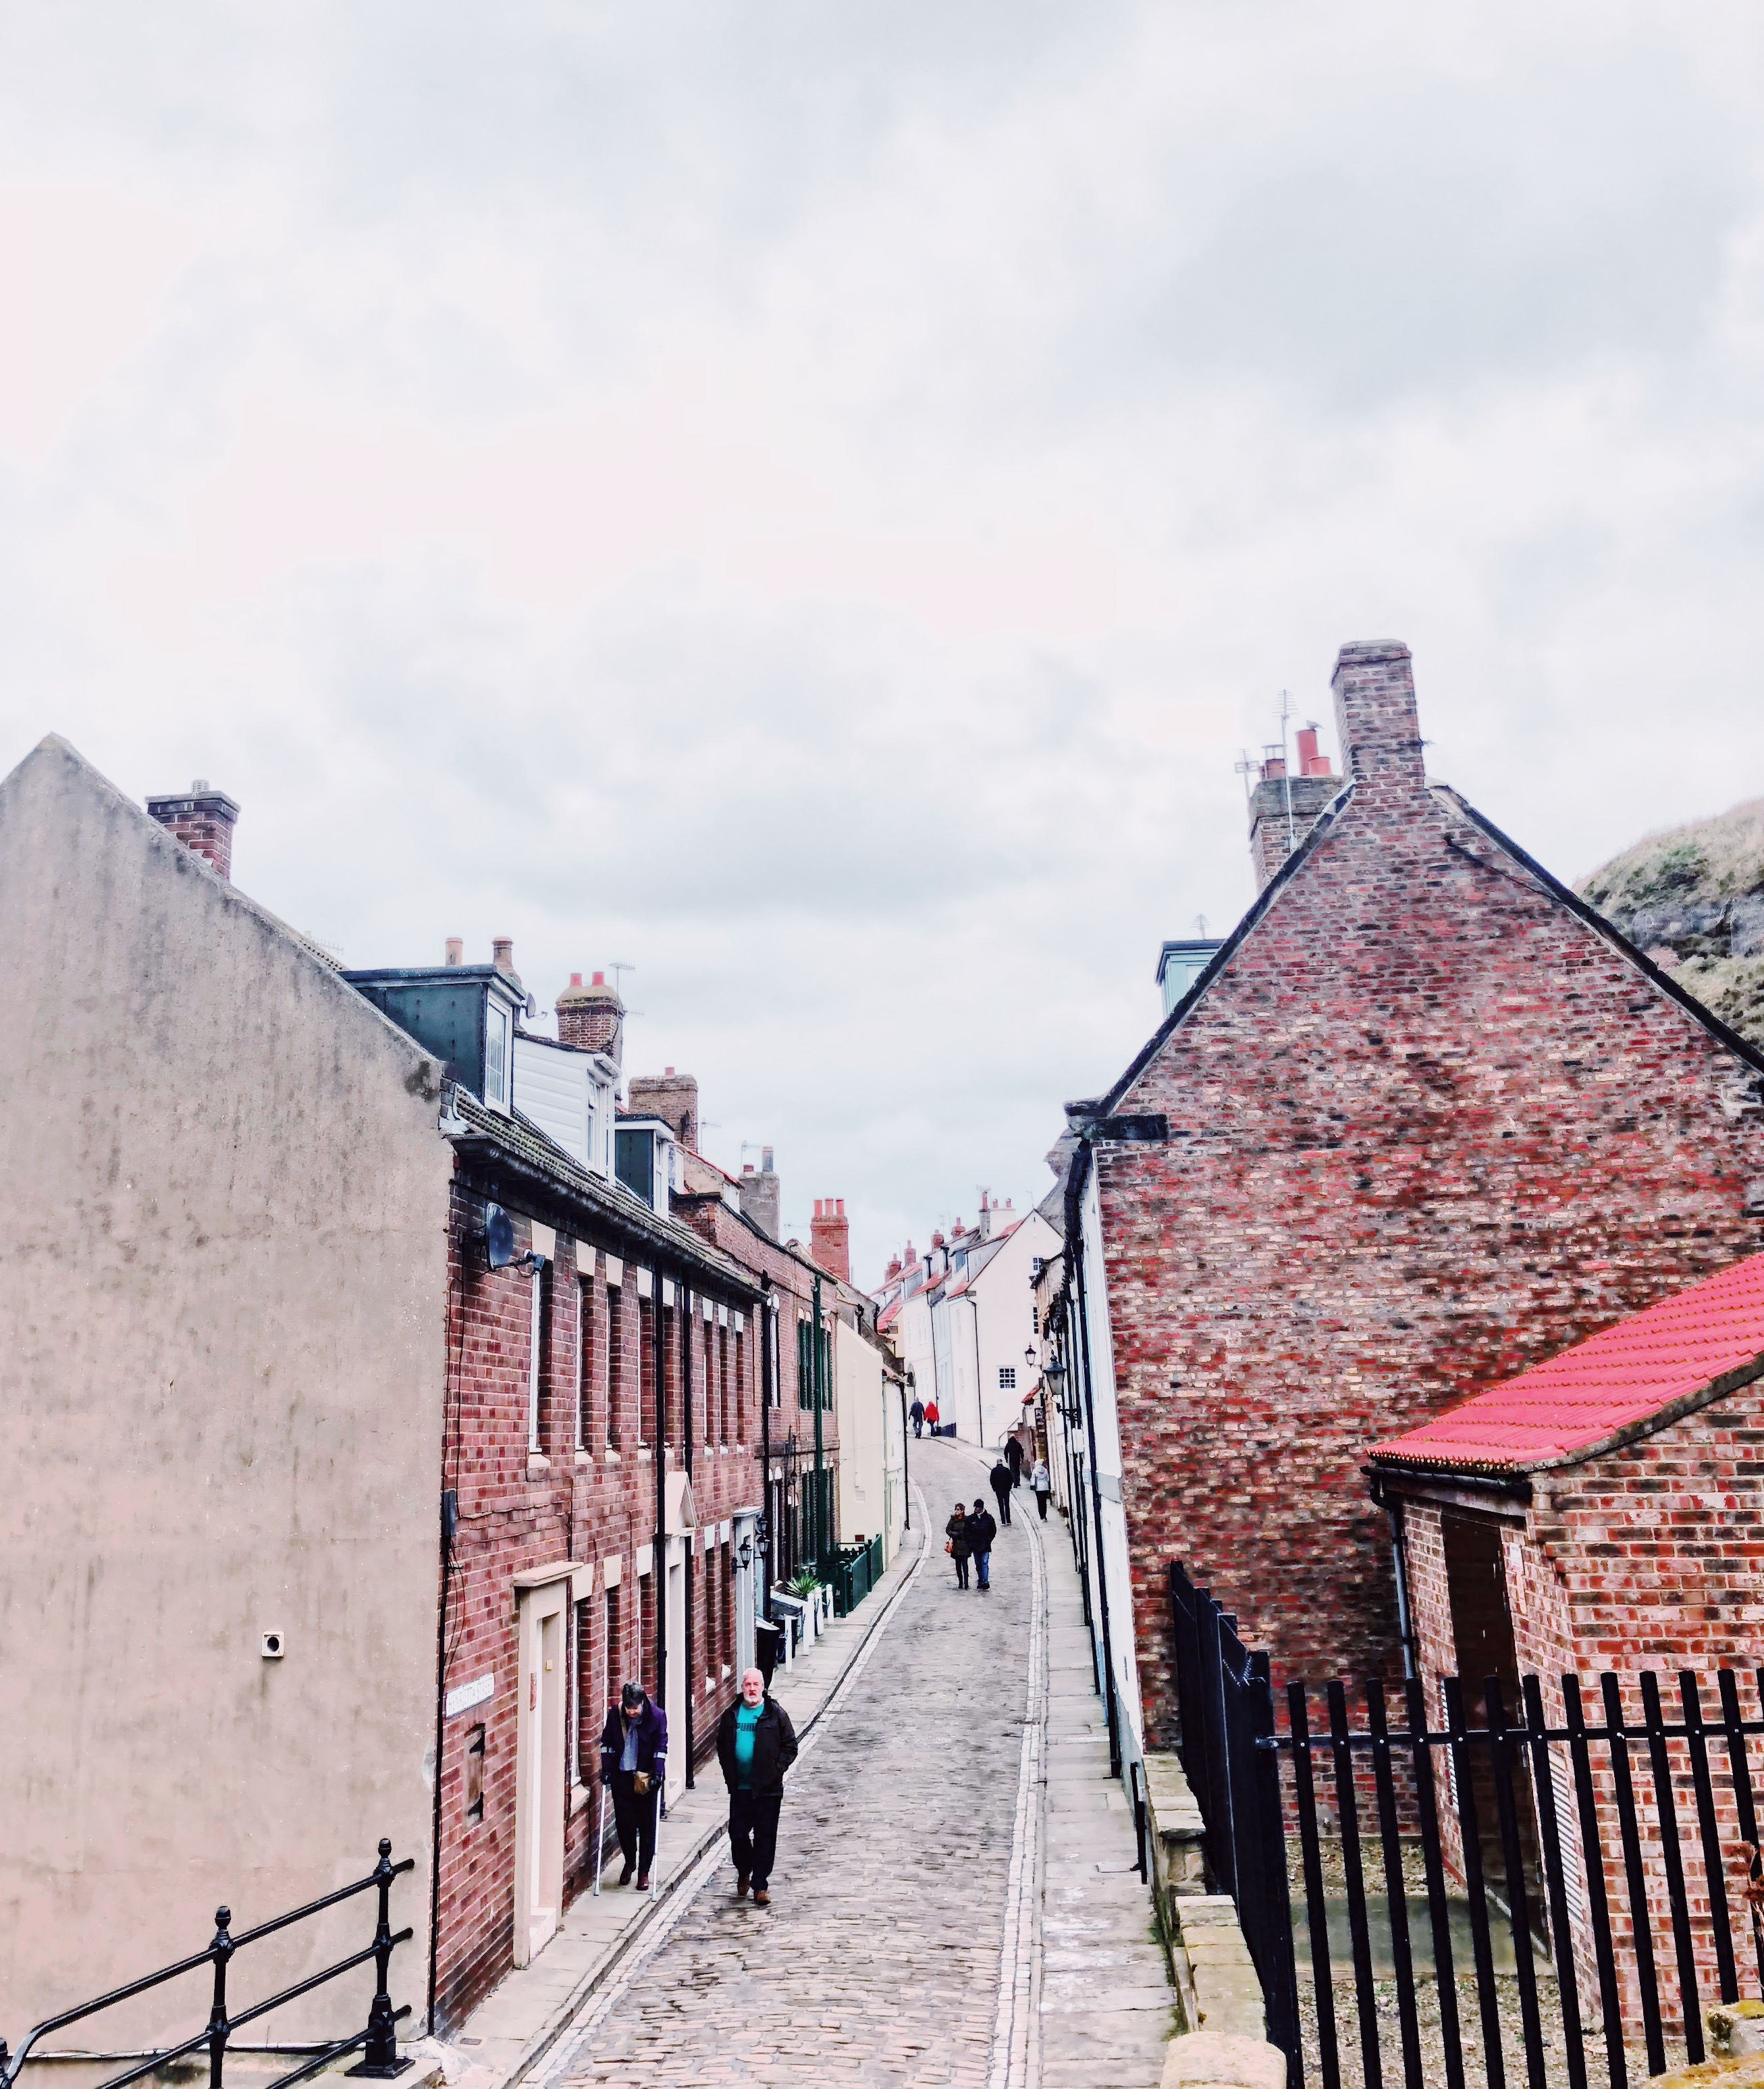 whitby street cobbled